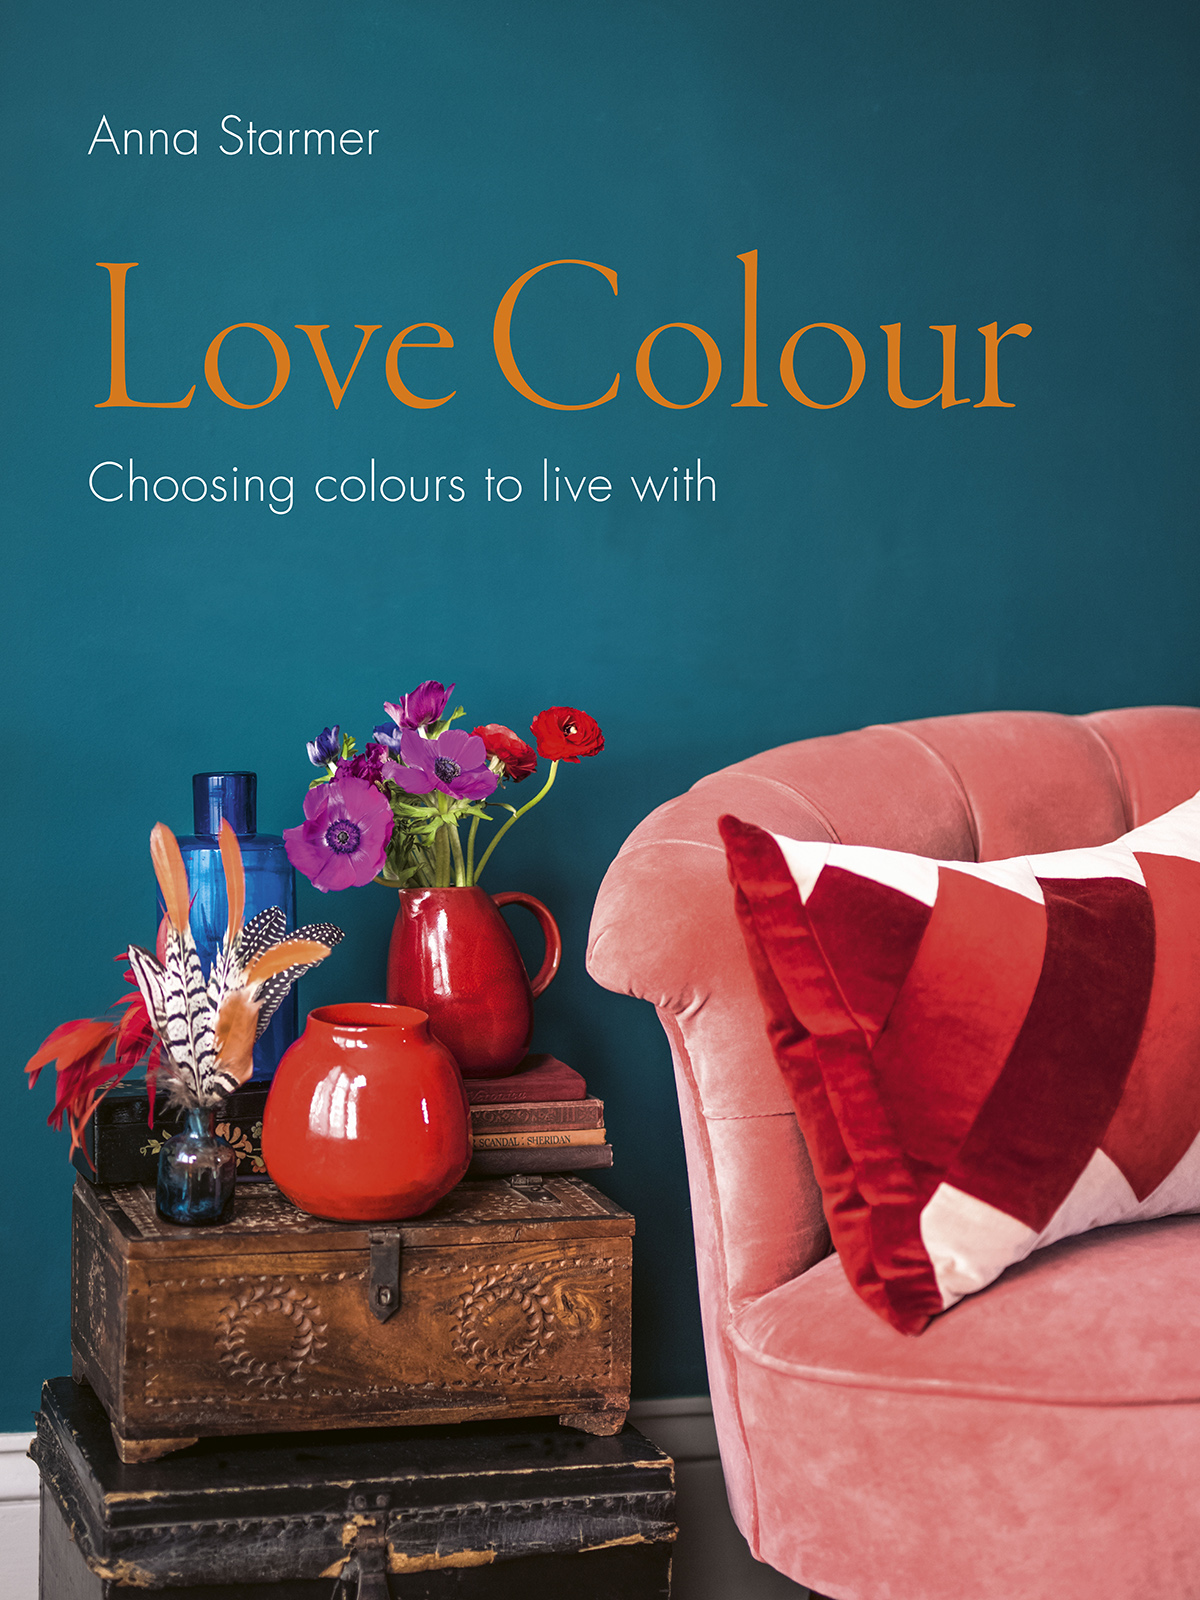 Interior designer Sophie Robinson interviews fellow colour queen Anna Starmer and discusses her book Love Colour: Choosing colours to live with. This beautifully illustrated book show you how to successfully combine colours in your home #lovecolour #sophierobinson #AnnaStarmer